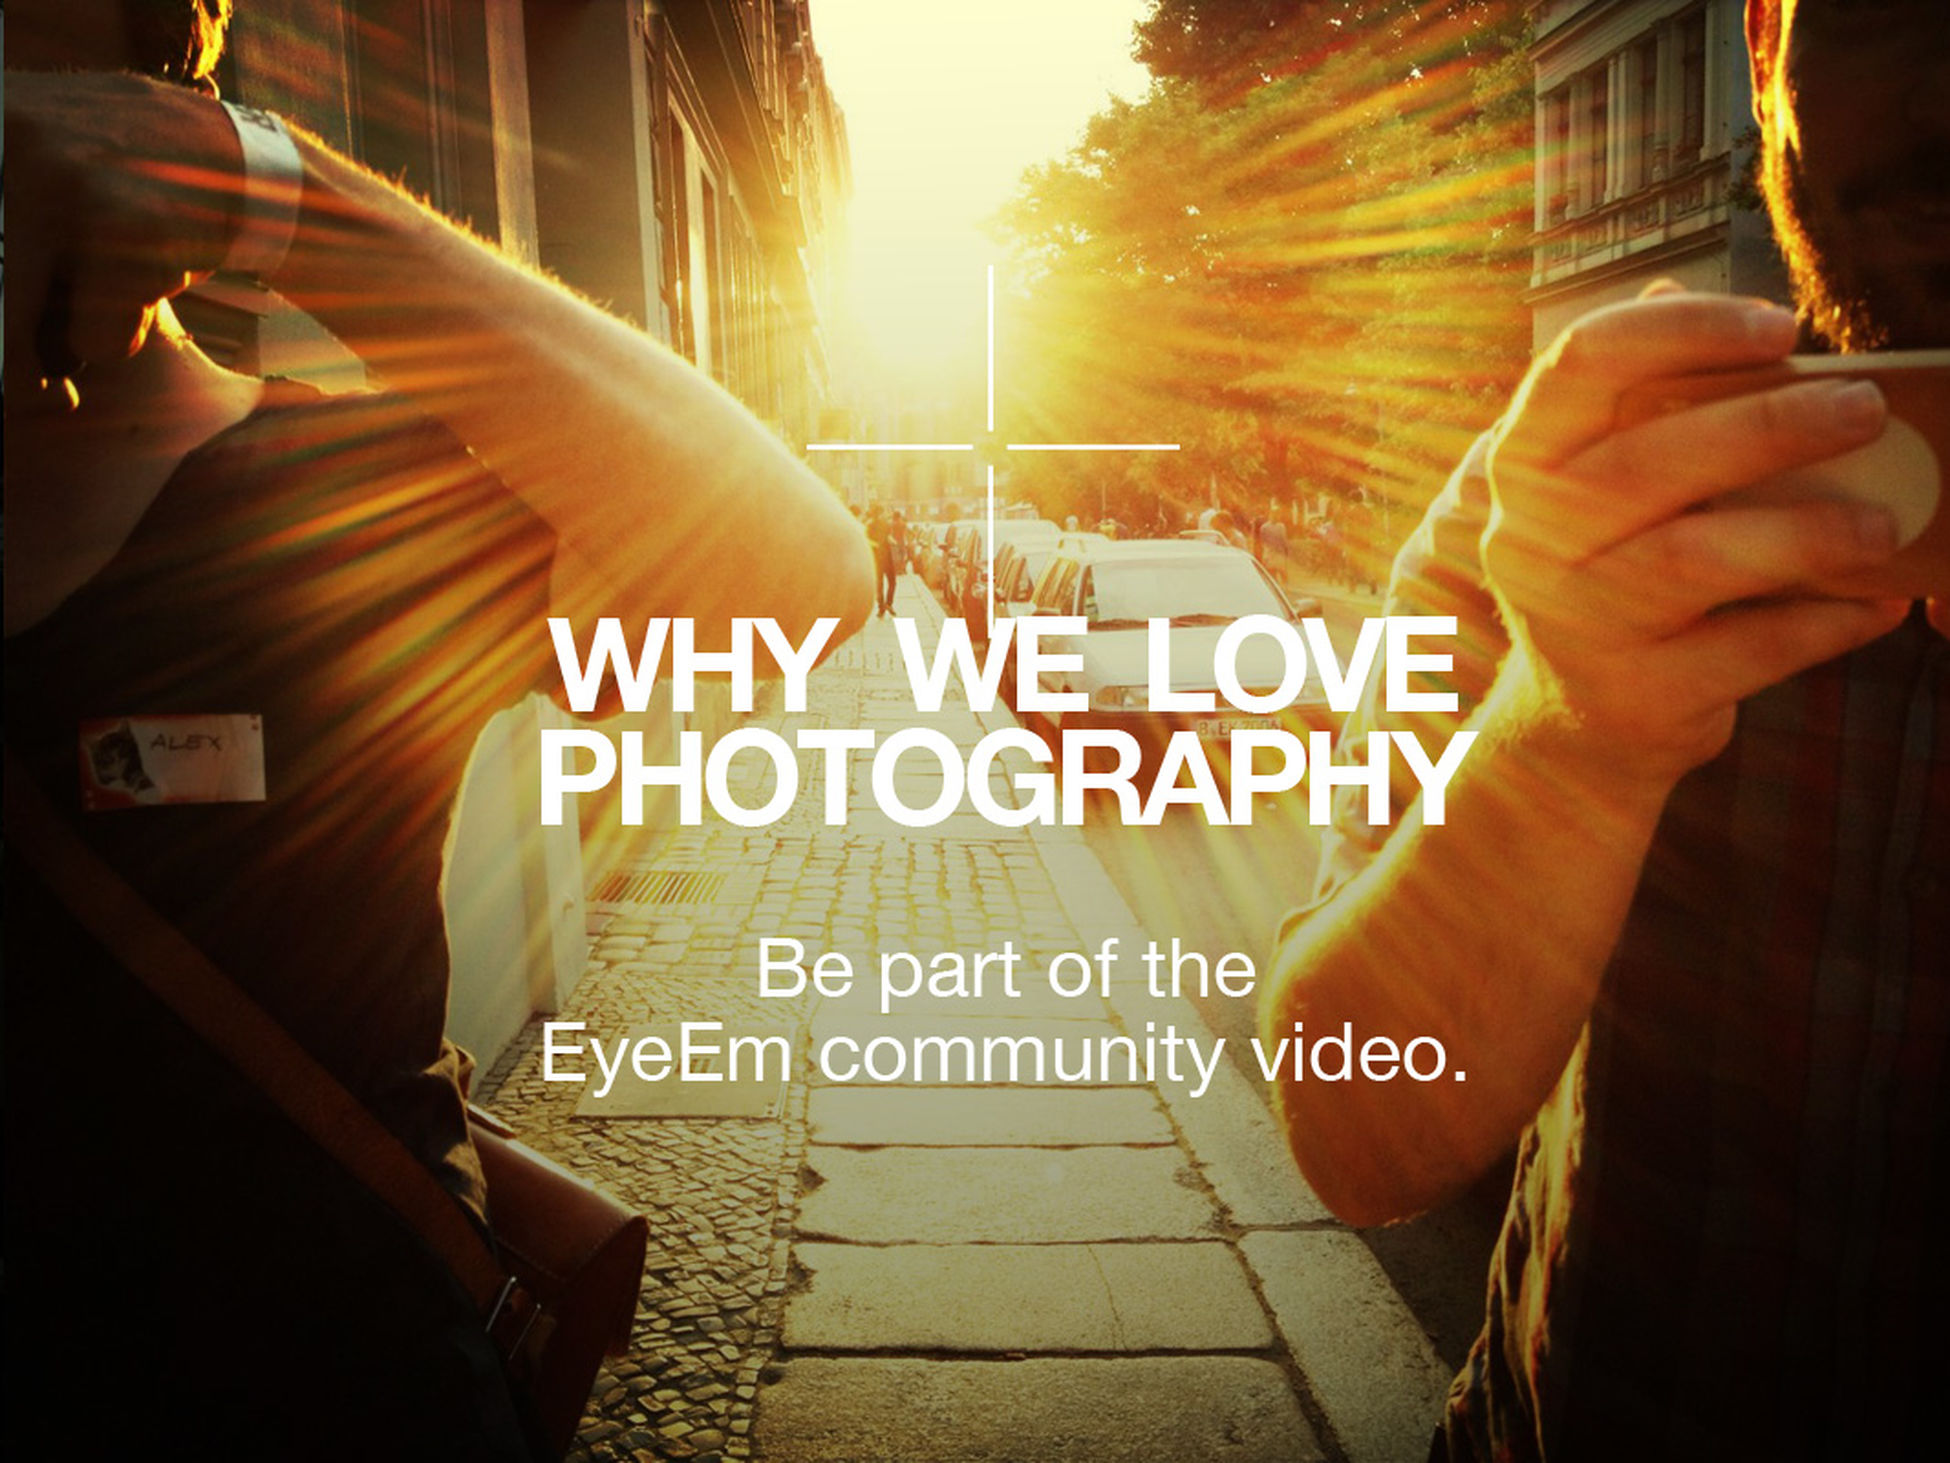 We're super excited about this: let's show the world how awesome the EyeEm community is and give our voice on what we love about photography. All details on our blog!